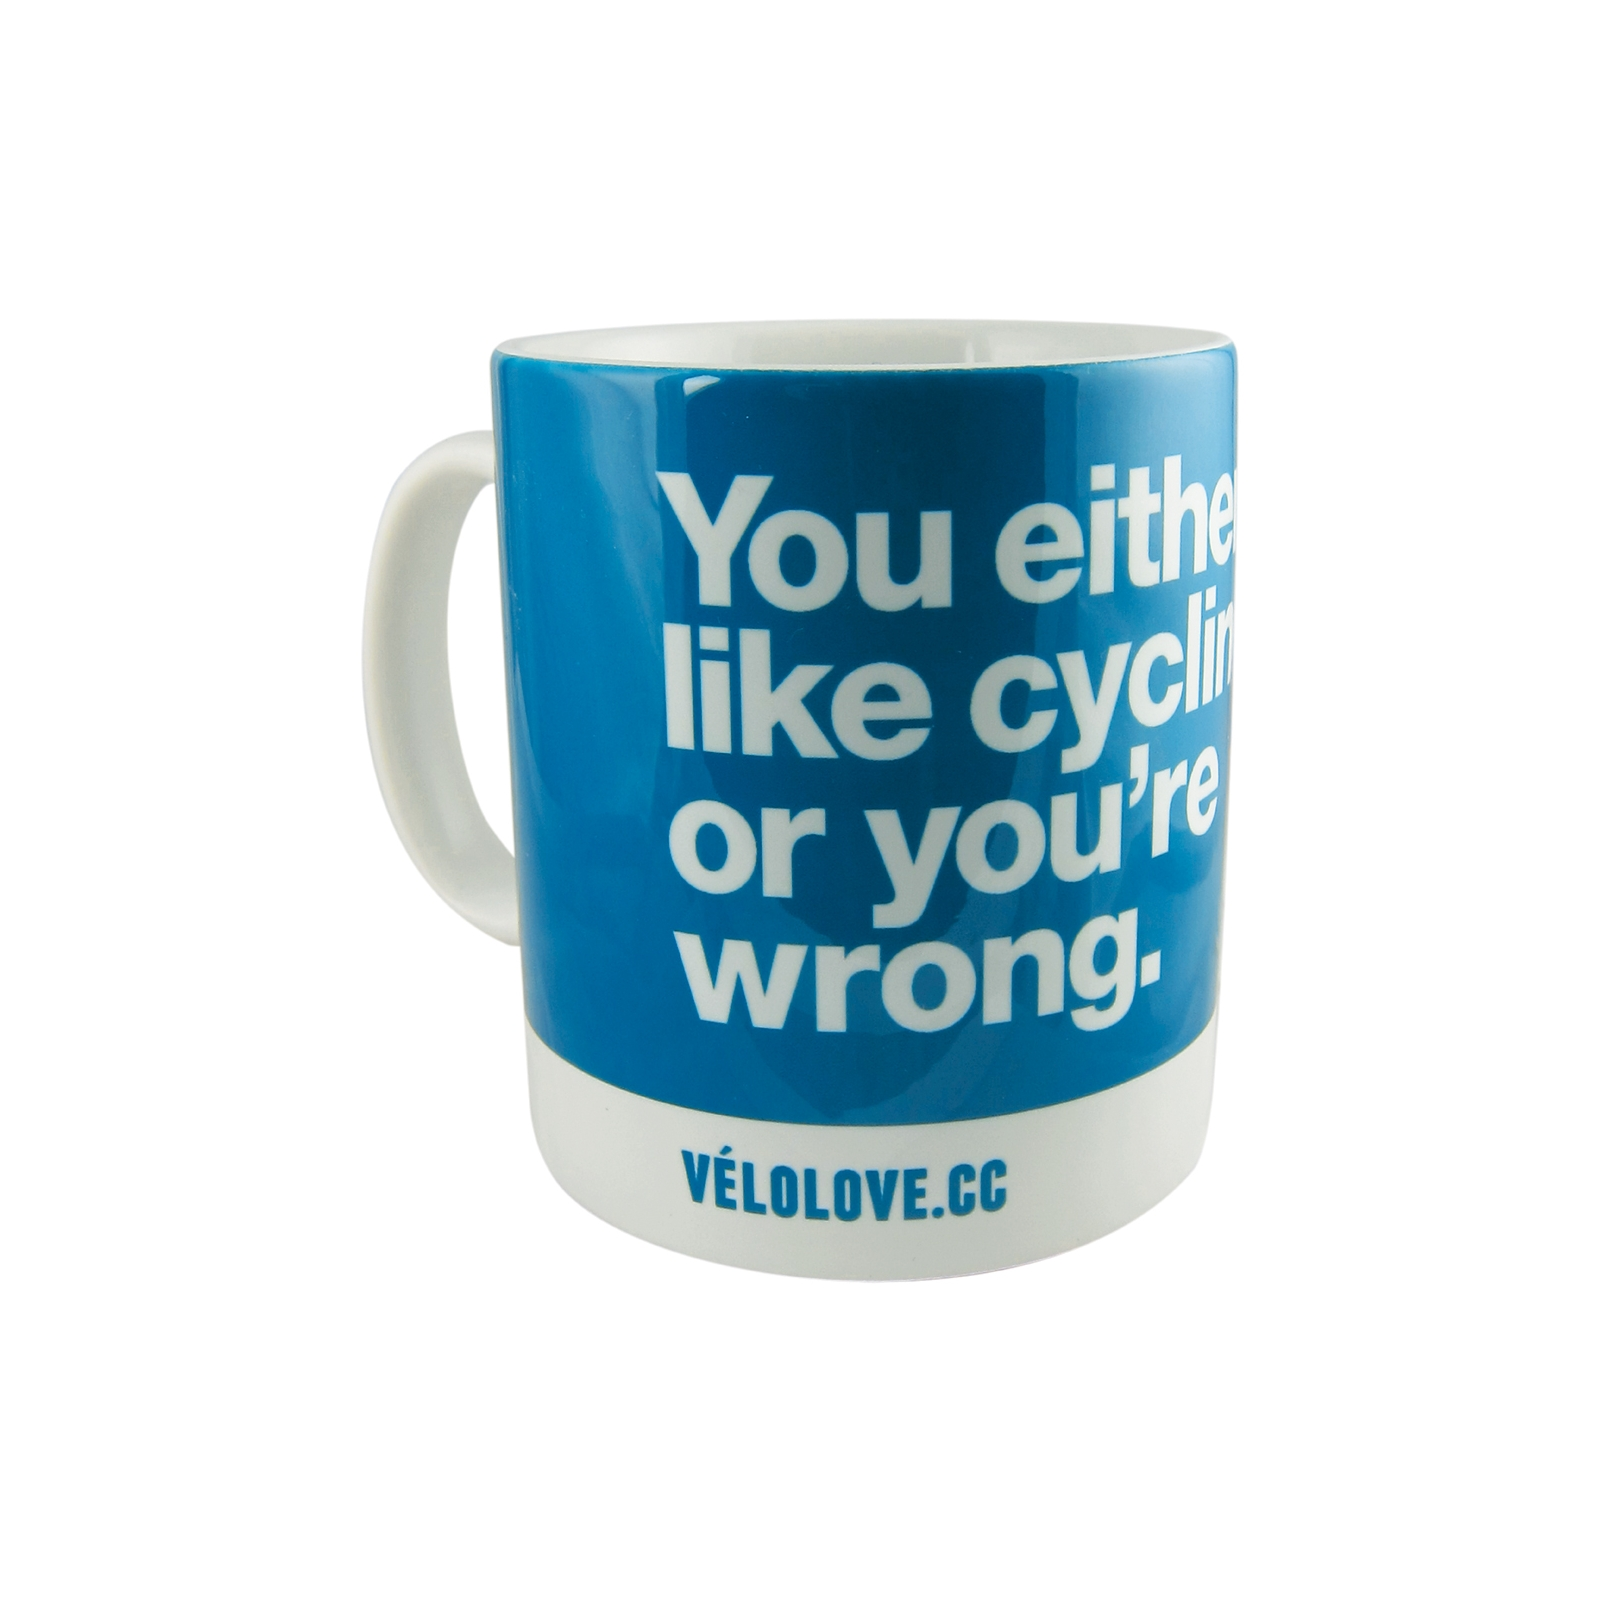 Velolove You either like cycling or you're wrong Mug | item_misc